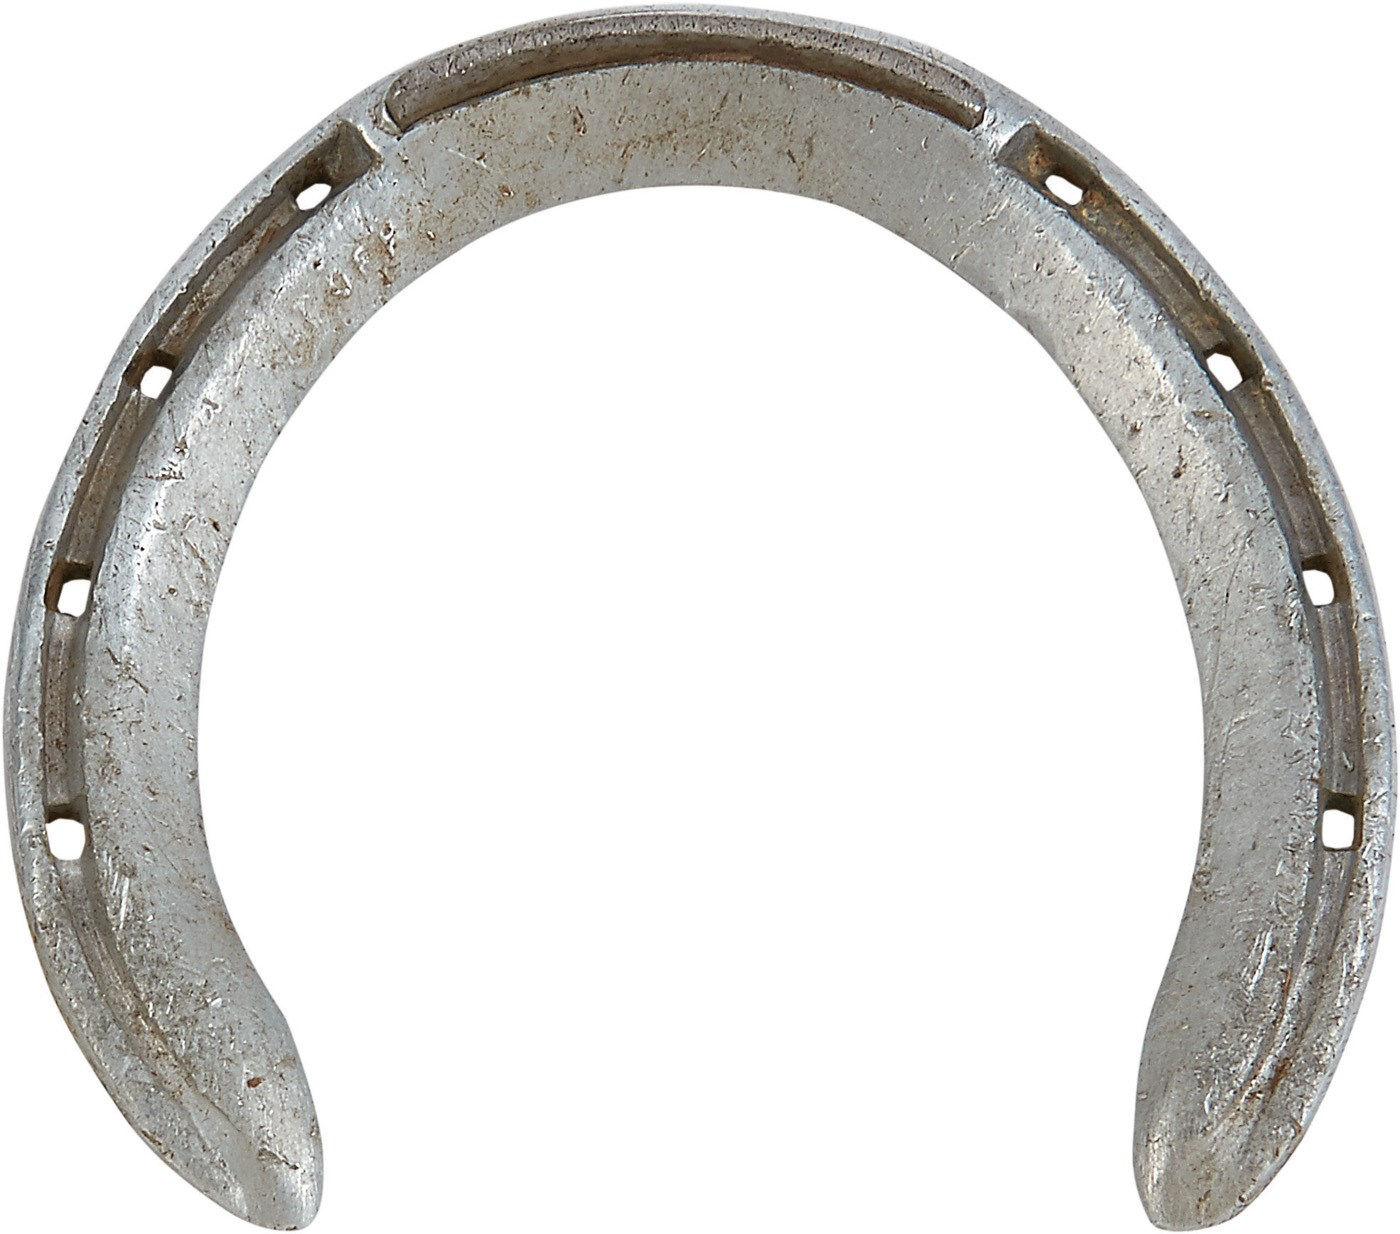 Ruffian 1975 Acorn Stakes Race Worn Horse Shoe from Frank Whiteley